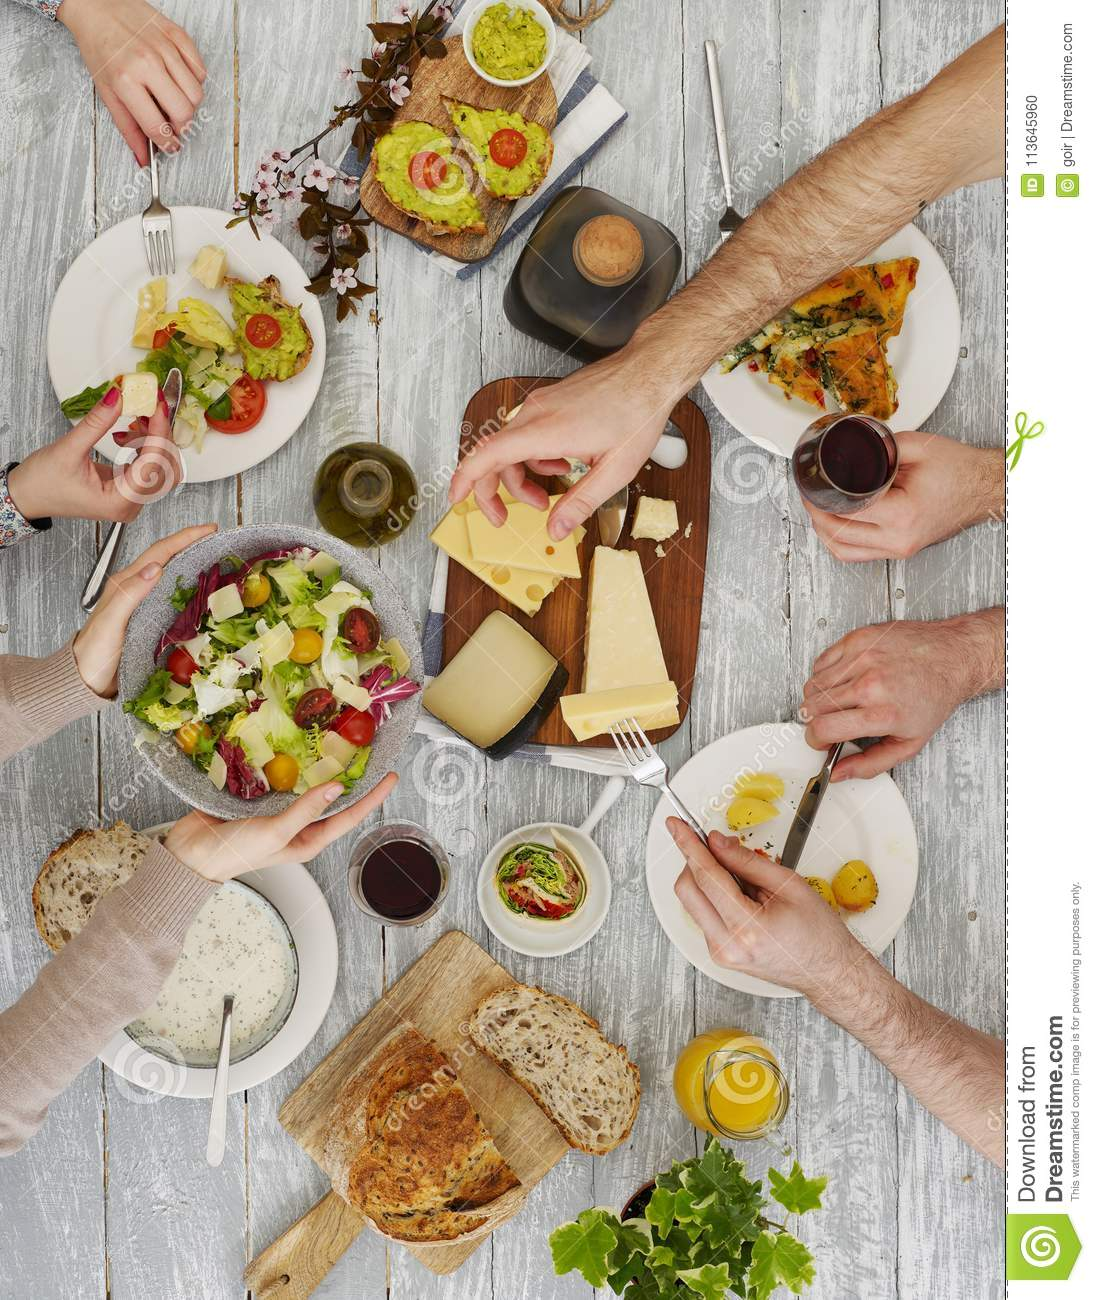 People sharing the food